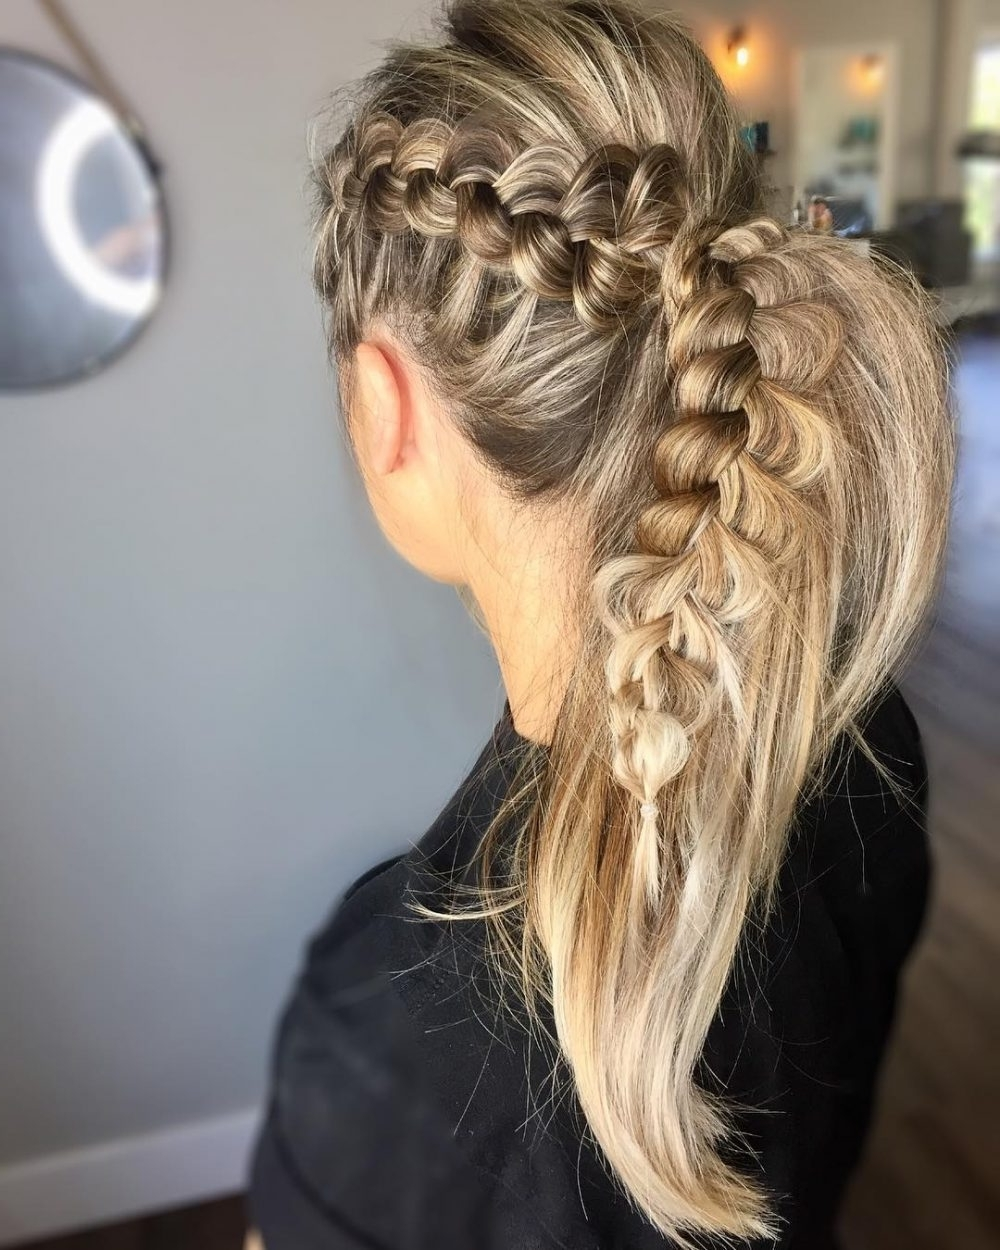 38 Ridiculously Cute Hairstyles For Long Hair (Popular In 2018) Regarding Favorite Simple Blonde Pony Hairstyles With A Bouffant (View 3 of 20)